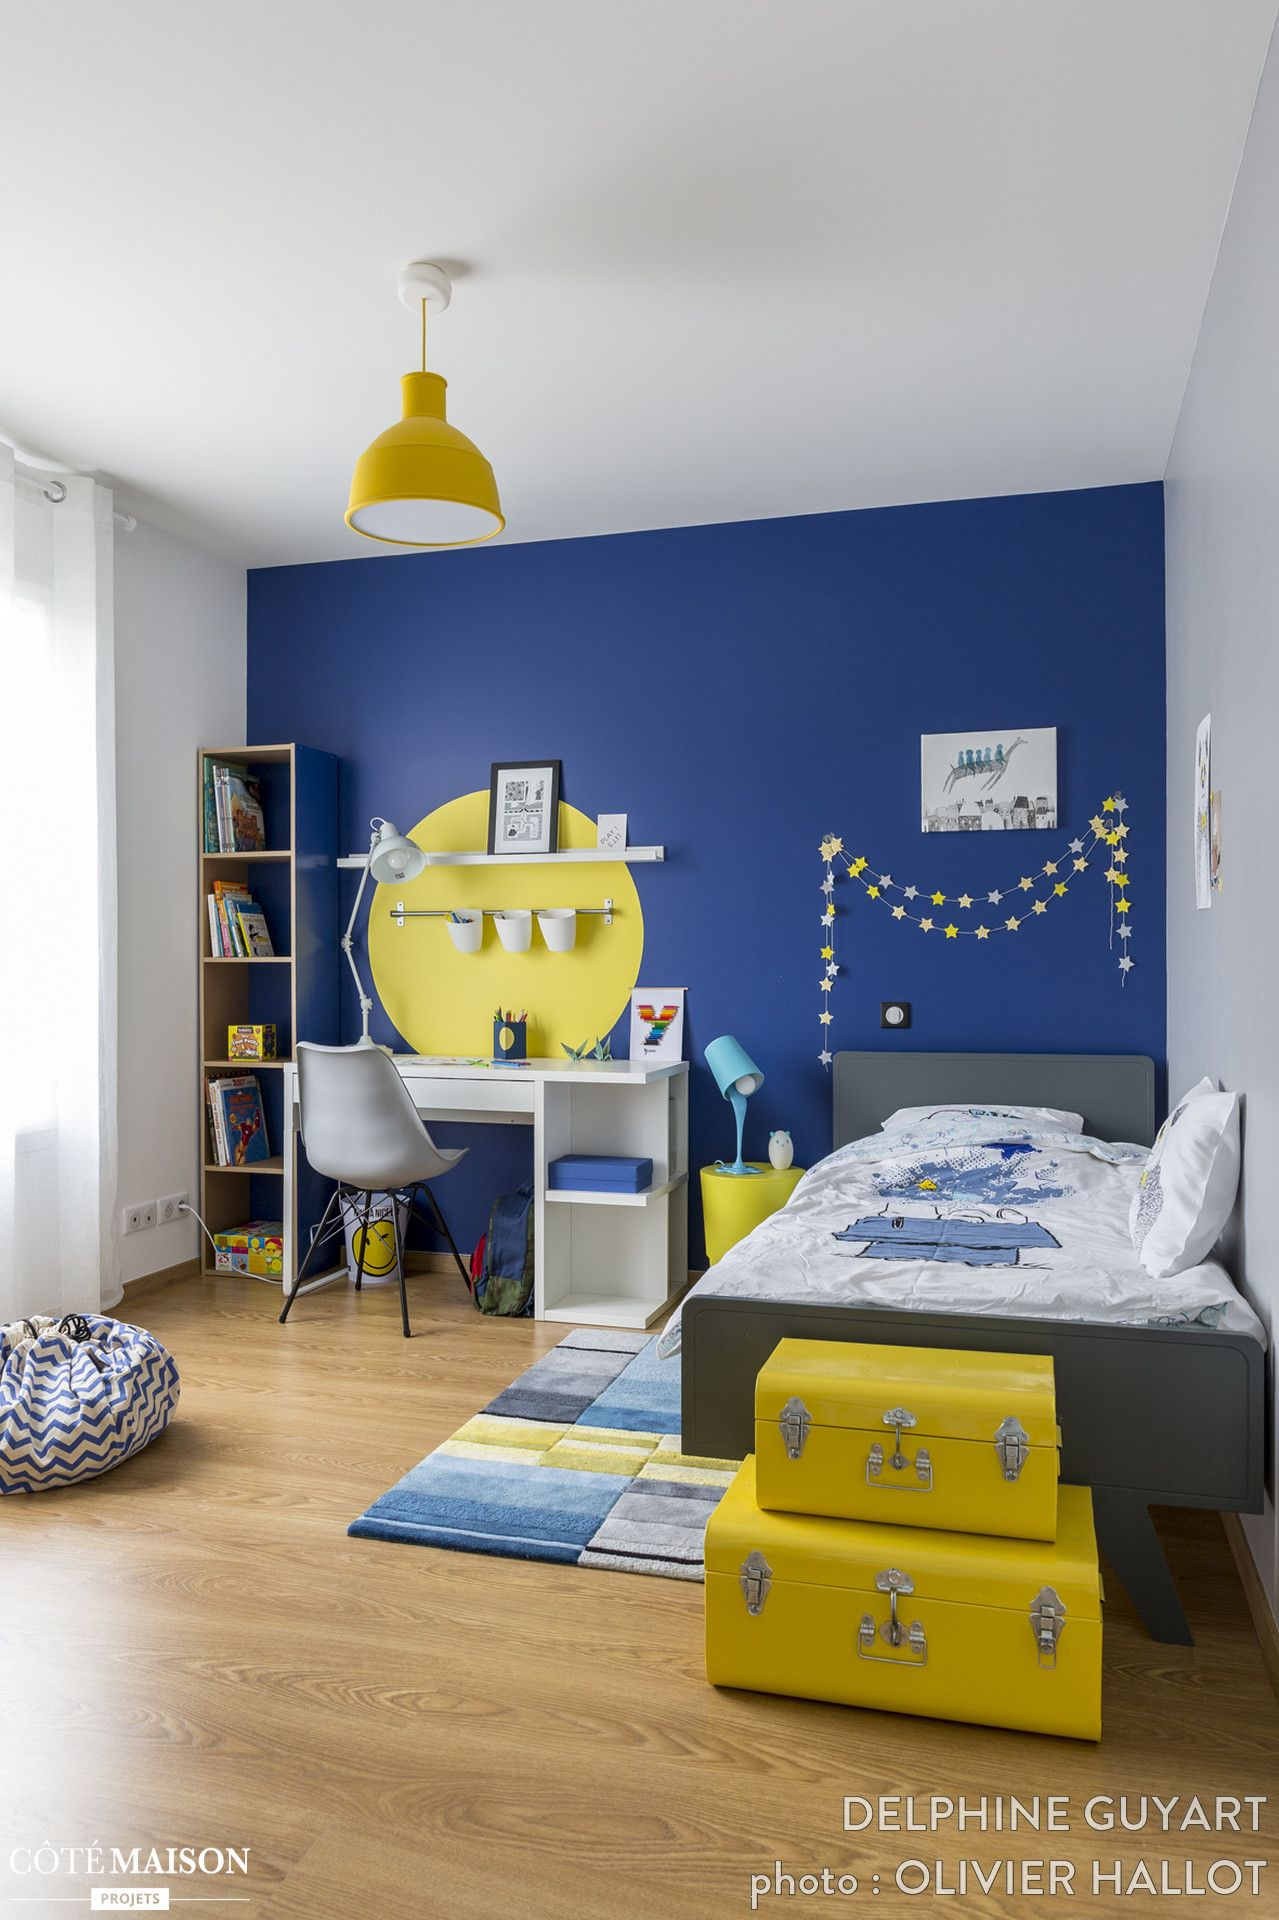 cr ation d 39 ambiance pour la chambre d 39 un gar on de 7 ans qui aime dessiner le bleu et le jaune. Black Bedroom Furniture Sets. Home Design Ideas